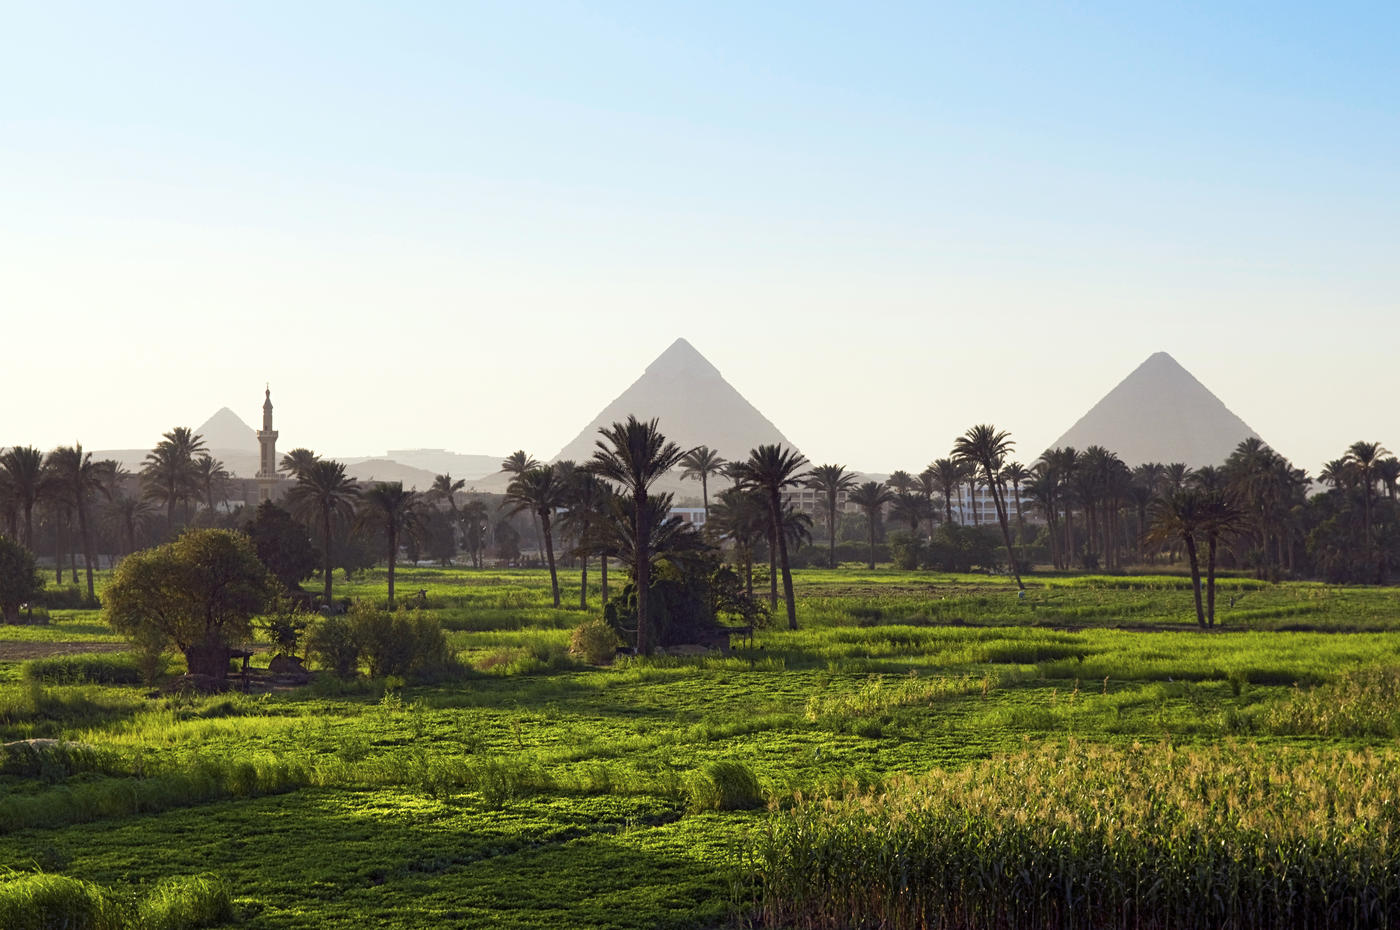 Guide to Currency and Prices in Egypt